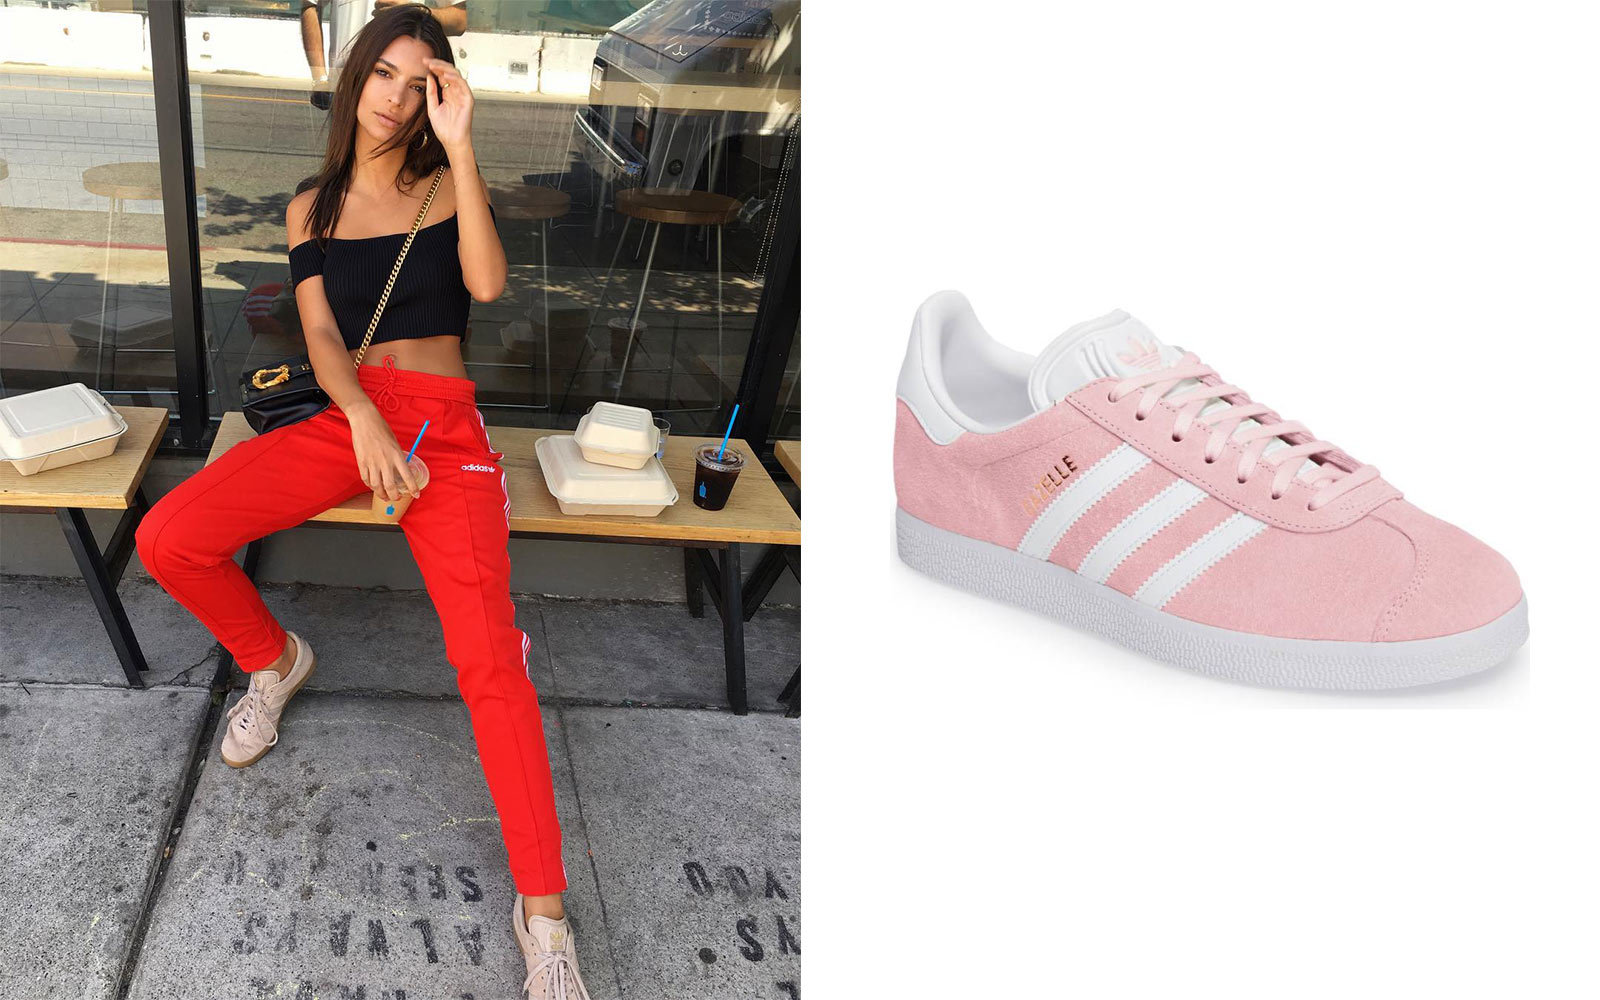 b9e7278d18ed 14 Sneakers Celebrities Love to Wear on the Go